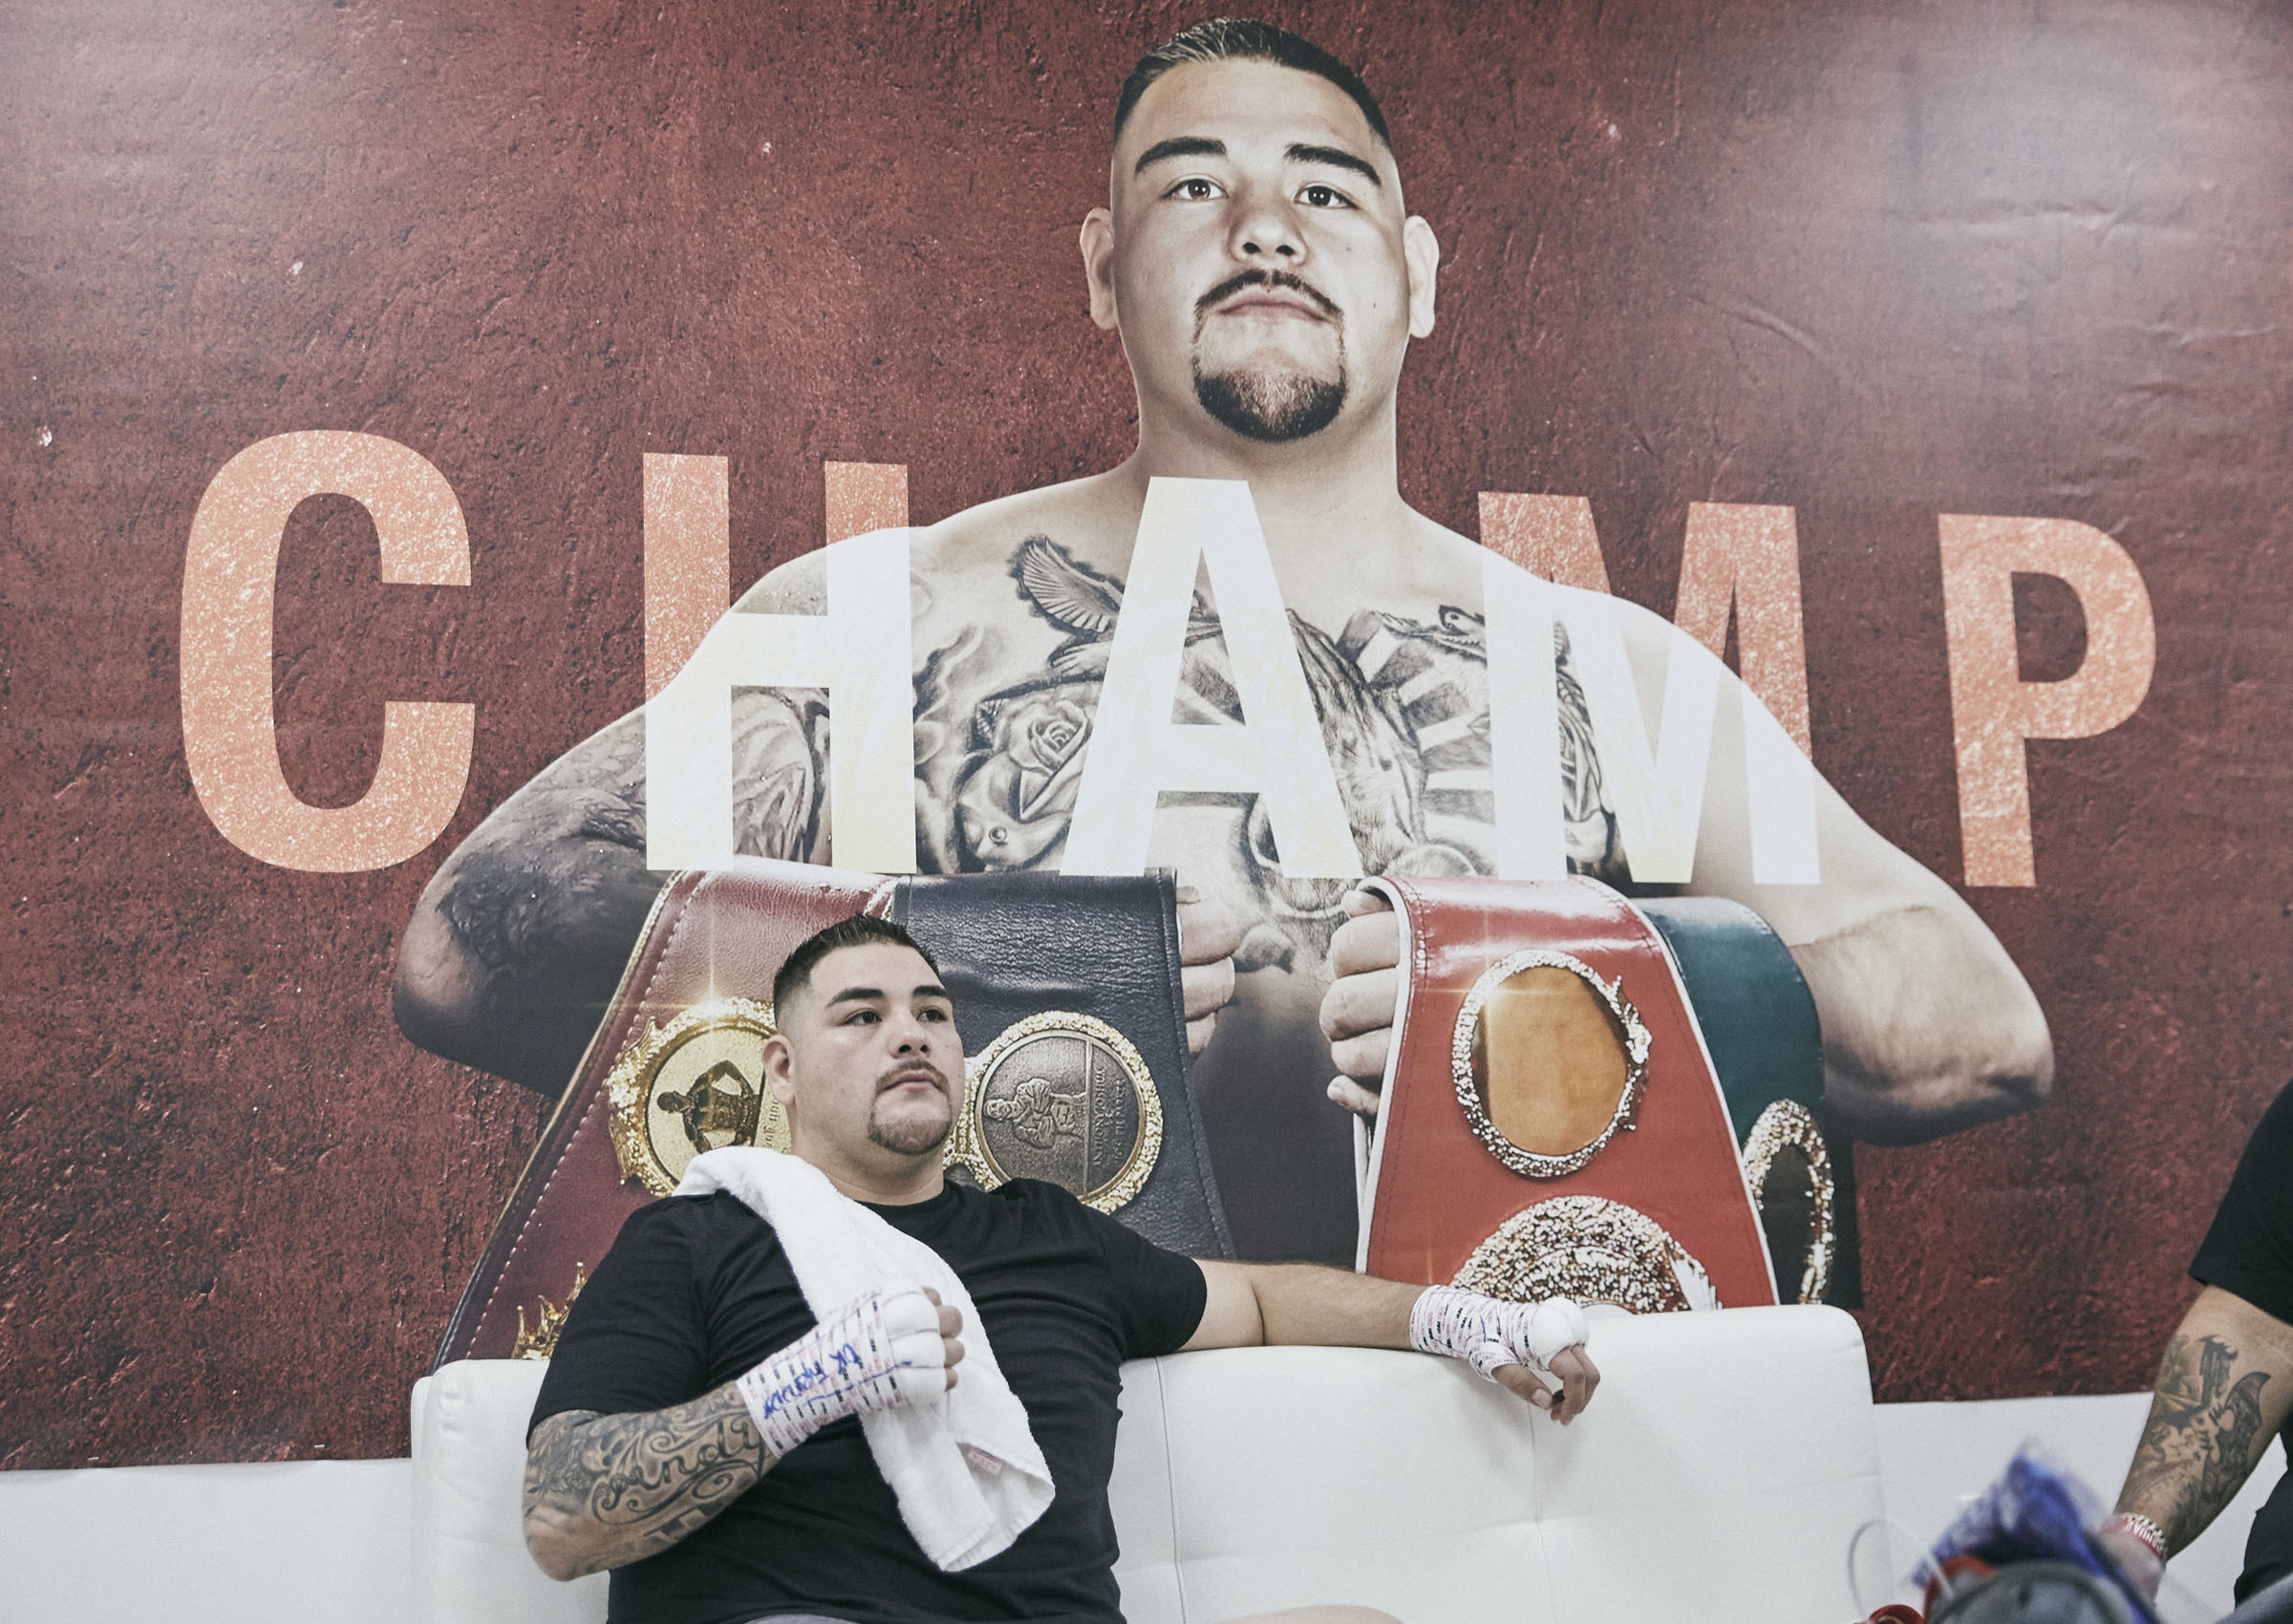 Andy Ruiz Jr Chilling Relaxing Dressing Room Backstage © Mark Robinson Photographer Matchrrom Boxing 2019.